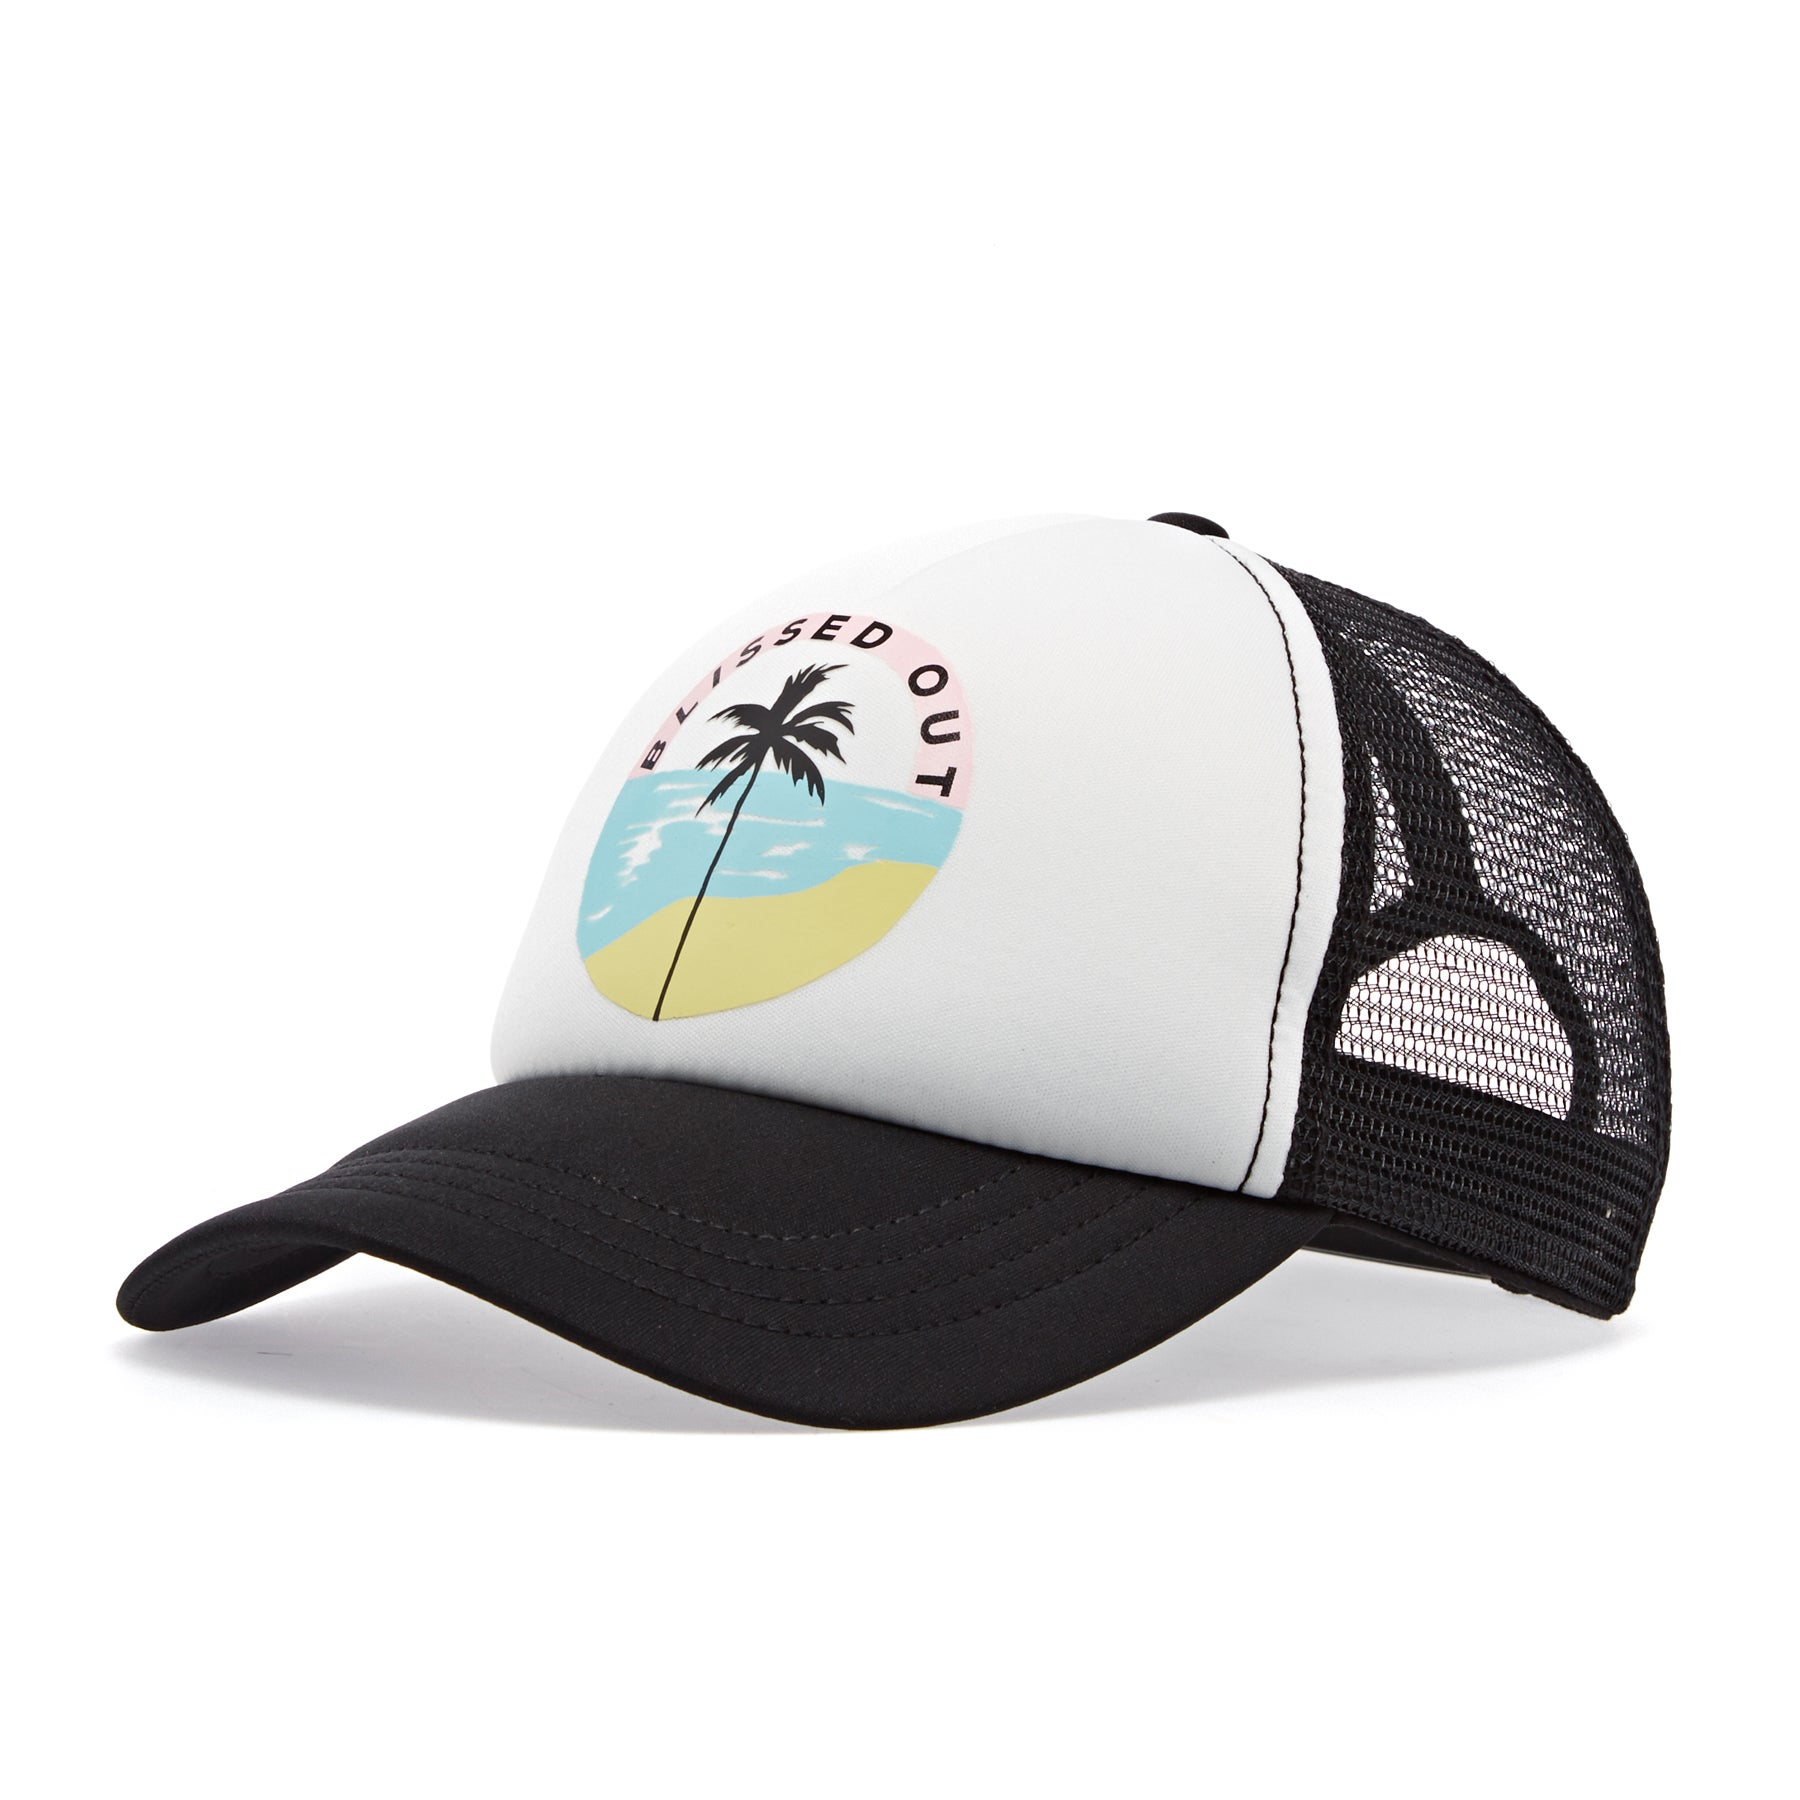 Casquette Femme Billabong Across Waves - Poolside